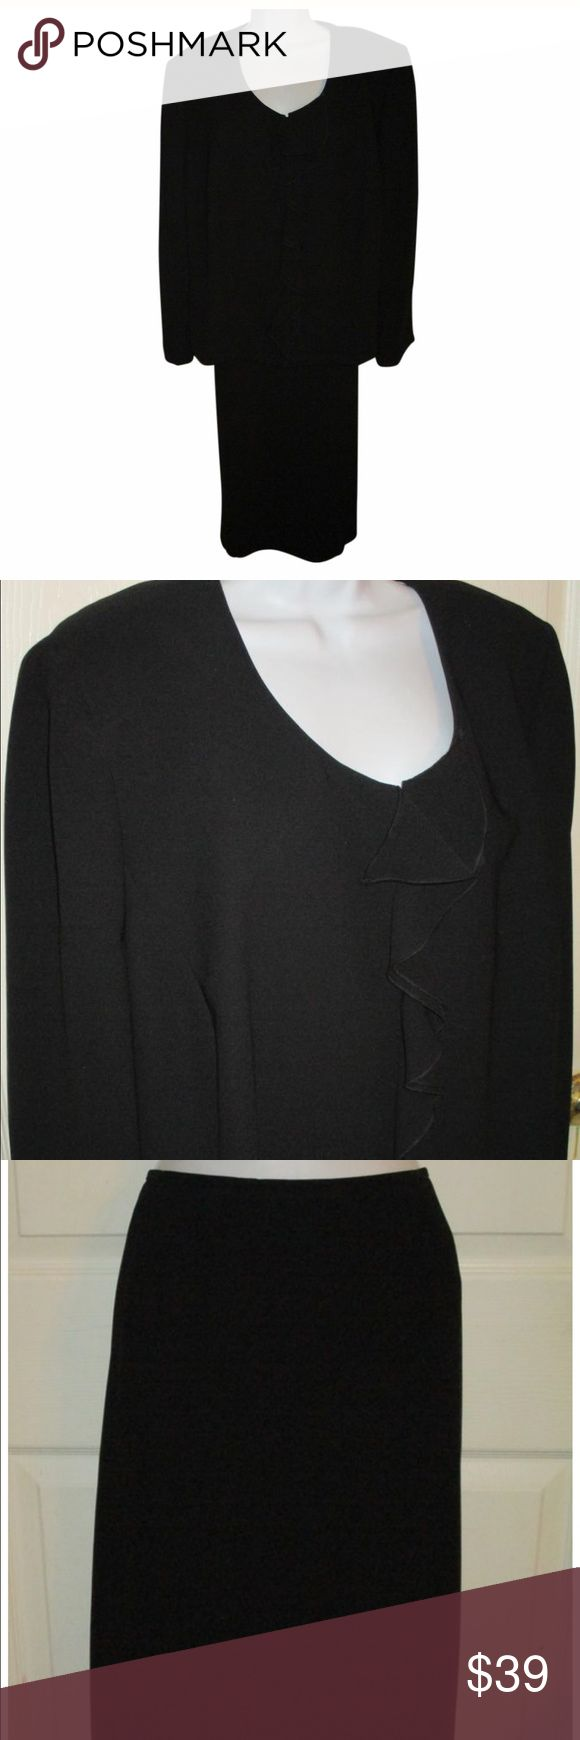 Tahari black long skirt suit size 22W This is a gorgeous black skirt suit size 20 2W. Material 100% polyester fully lined. The jacket bust measurement is 56 inches in length is 24 inches. The waist measurement is 46 inches and the length of the skirt is 32 inches. Tahari Woman Skirts Skirt Sets